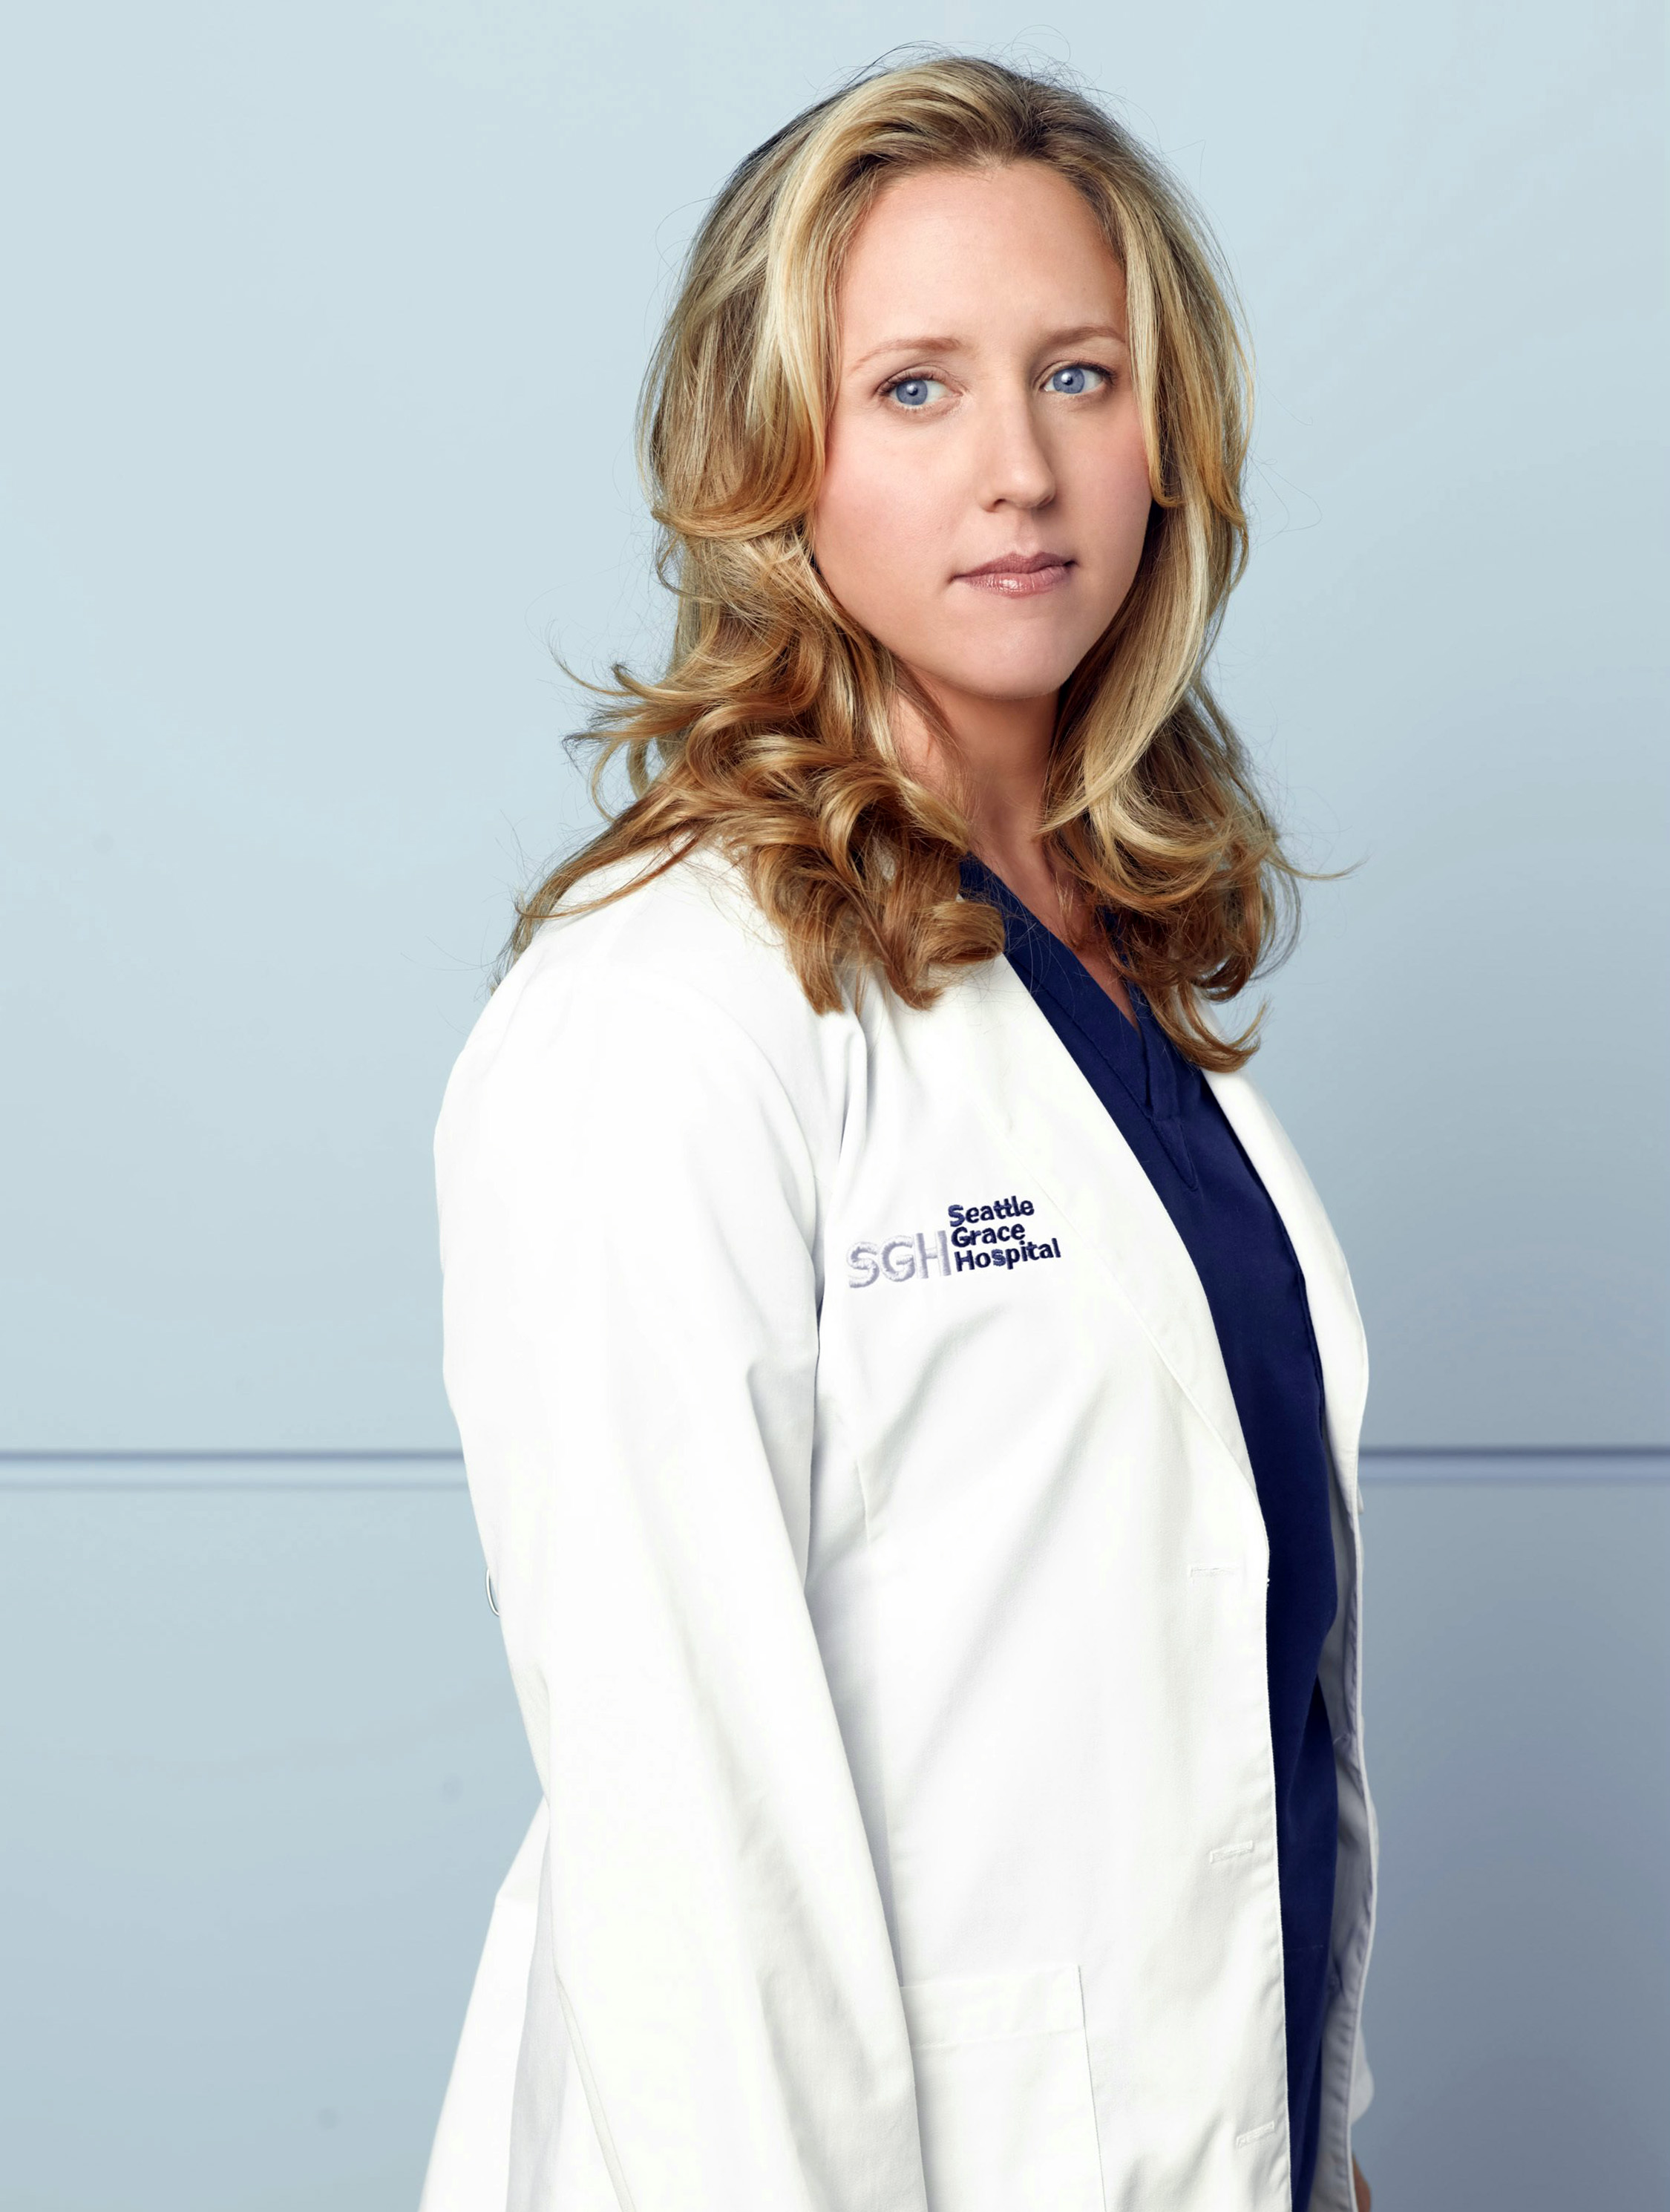 Greys-Anatomy-S04-Brooke-Smith-3-dvdbash | DVDbash